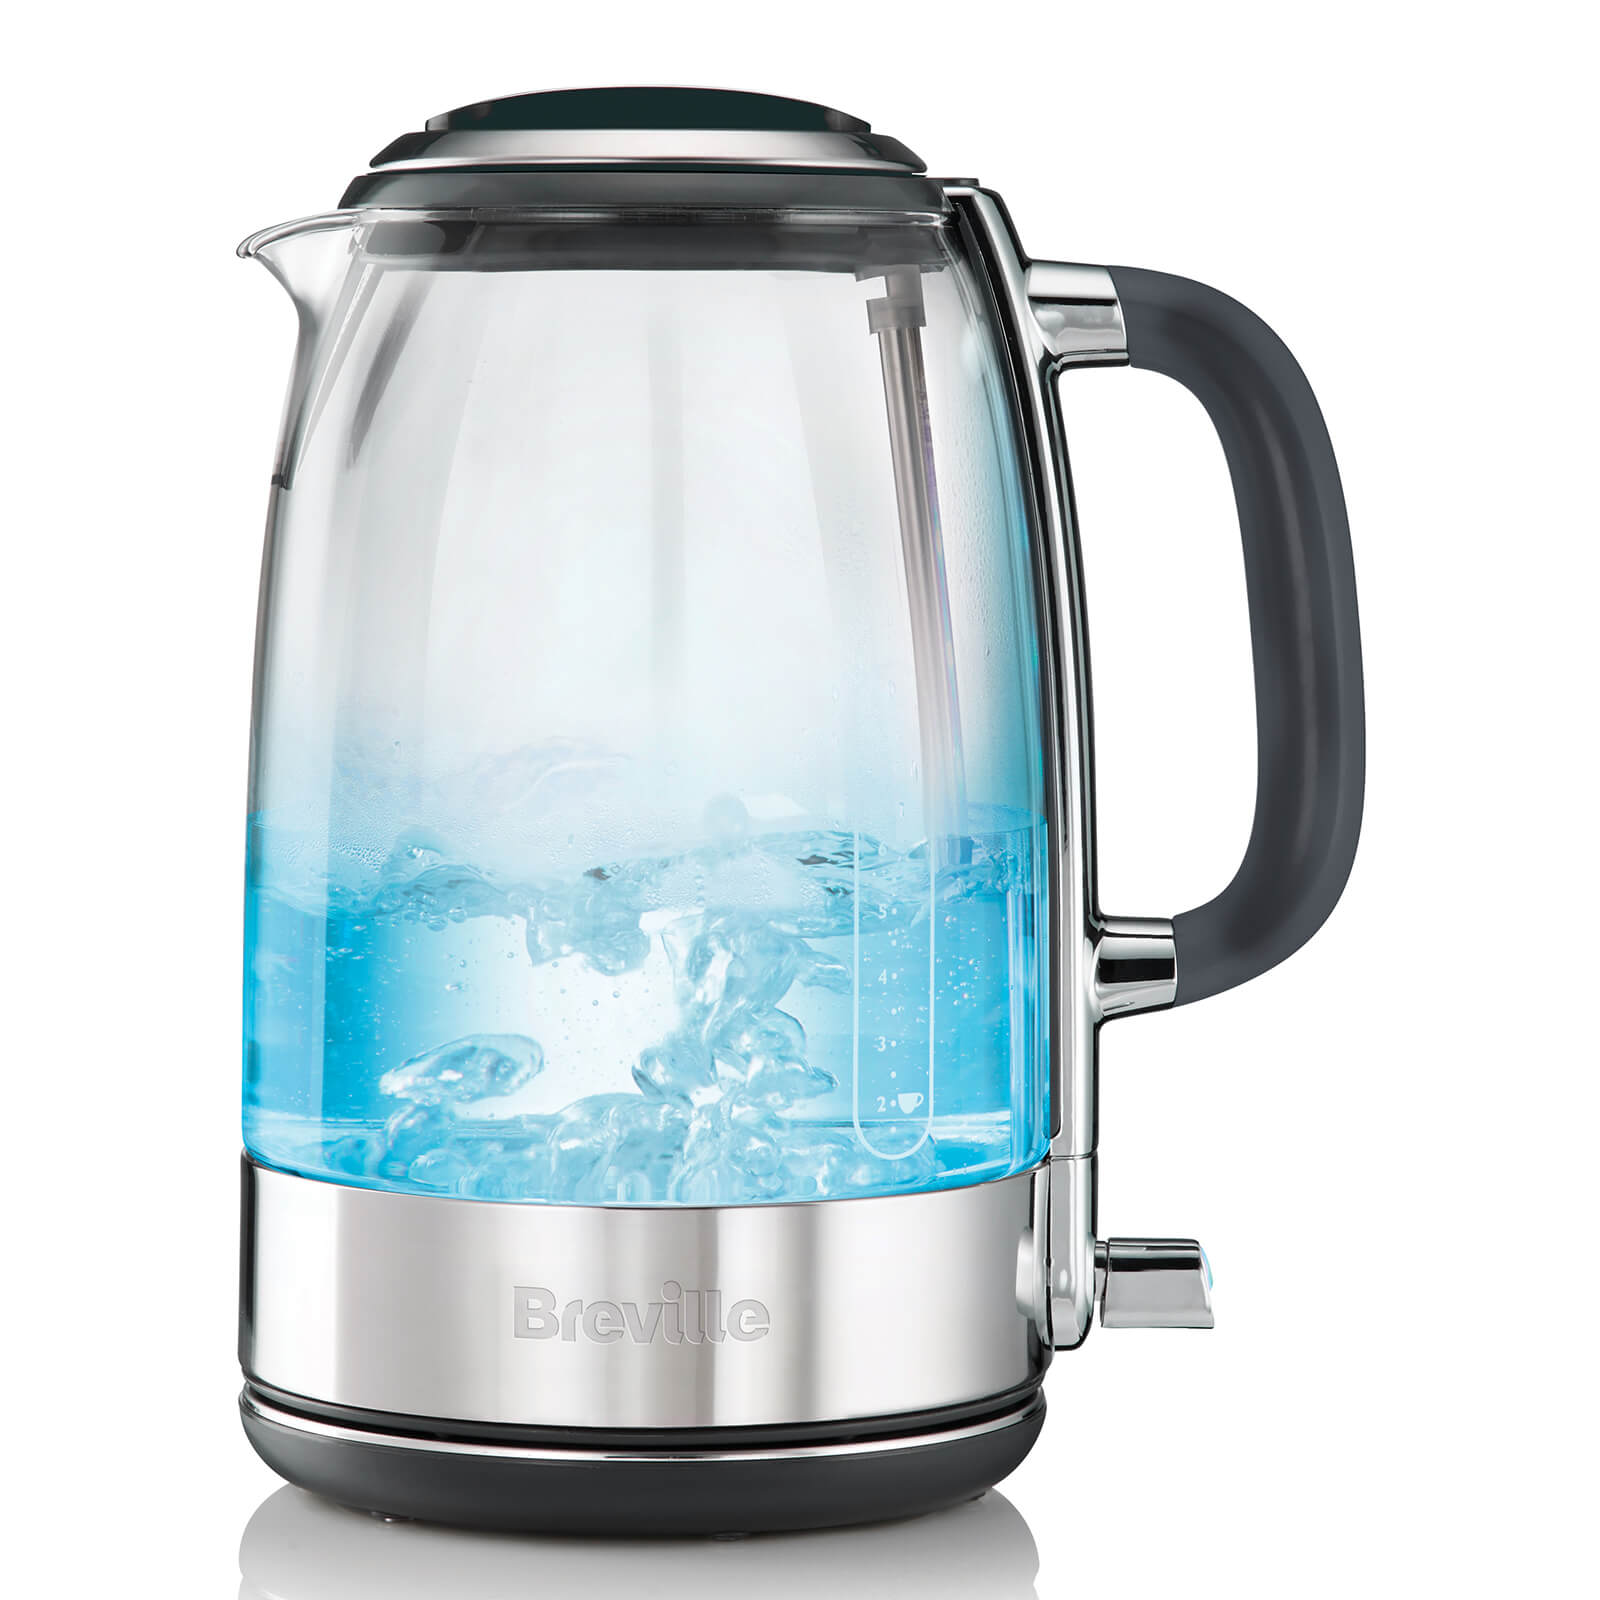 Breville VKT071 Crystal Clear Glass Illuminated 1.7L Kettle